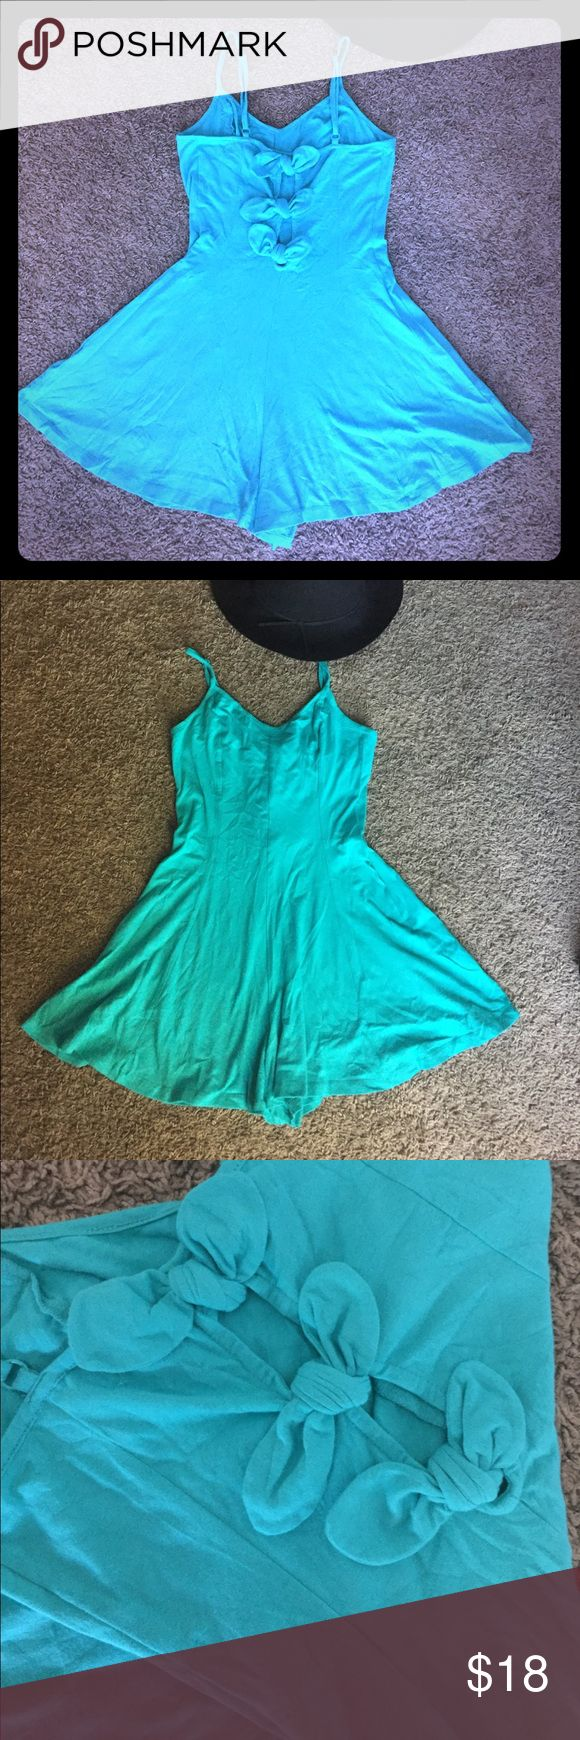 Kimchi blue urban outfitters bow back romper Size small. Worn once, hand washed and laid to dry. Very gently used and in excellent condition. Darling bow back with adjustable spaghetti straps. Last pic to show fit ❤️ Urban Outfitters Dresses Mini